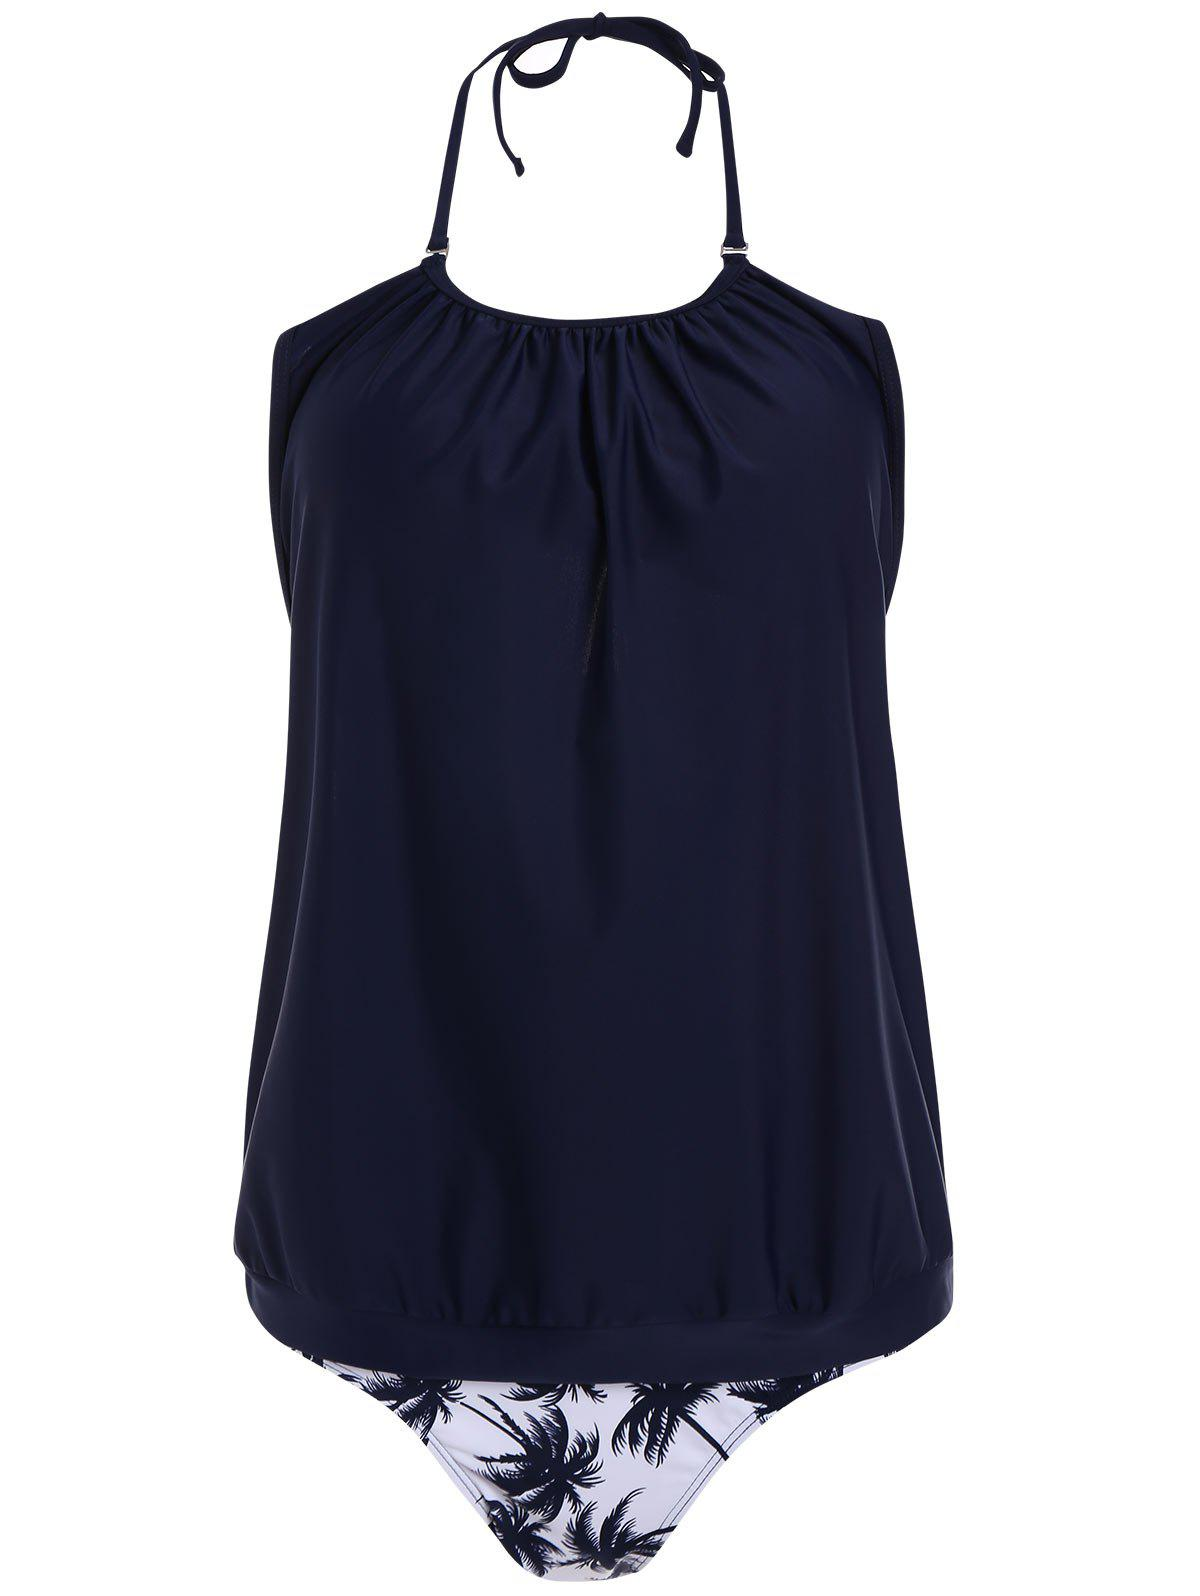 Where to find plus size tankini?